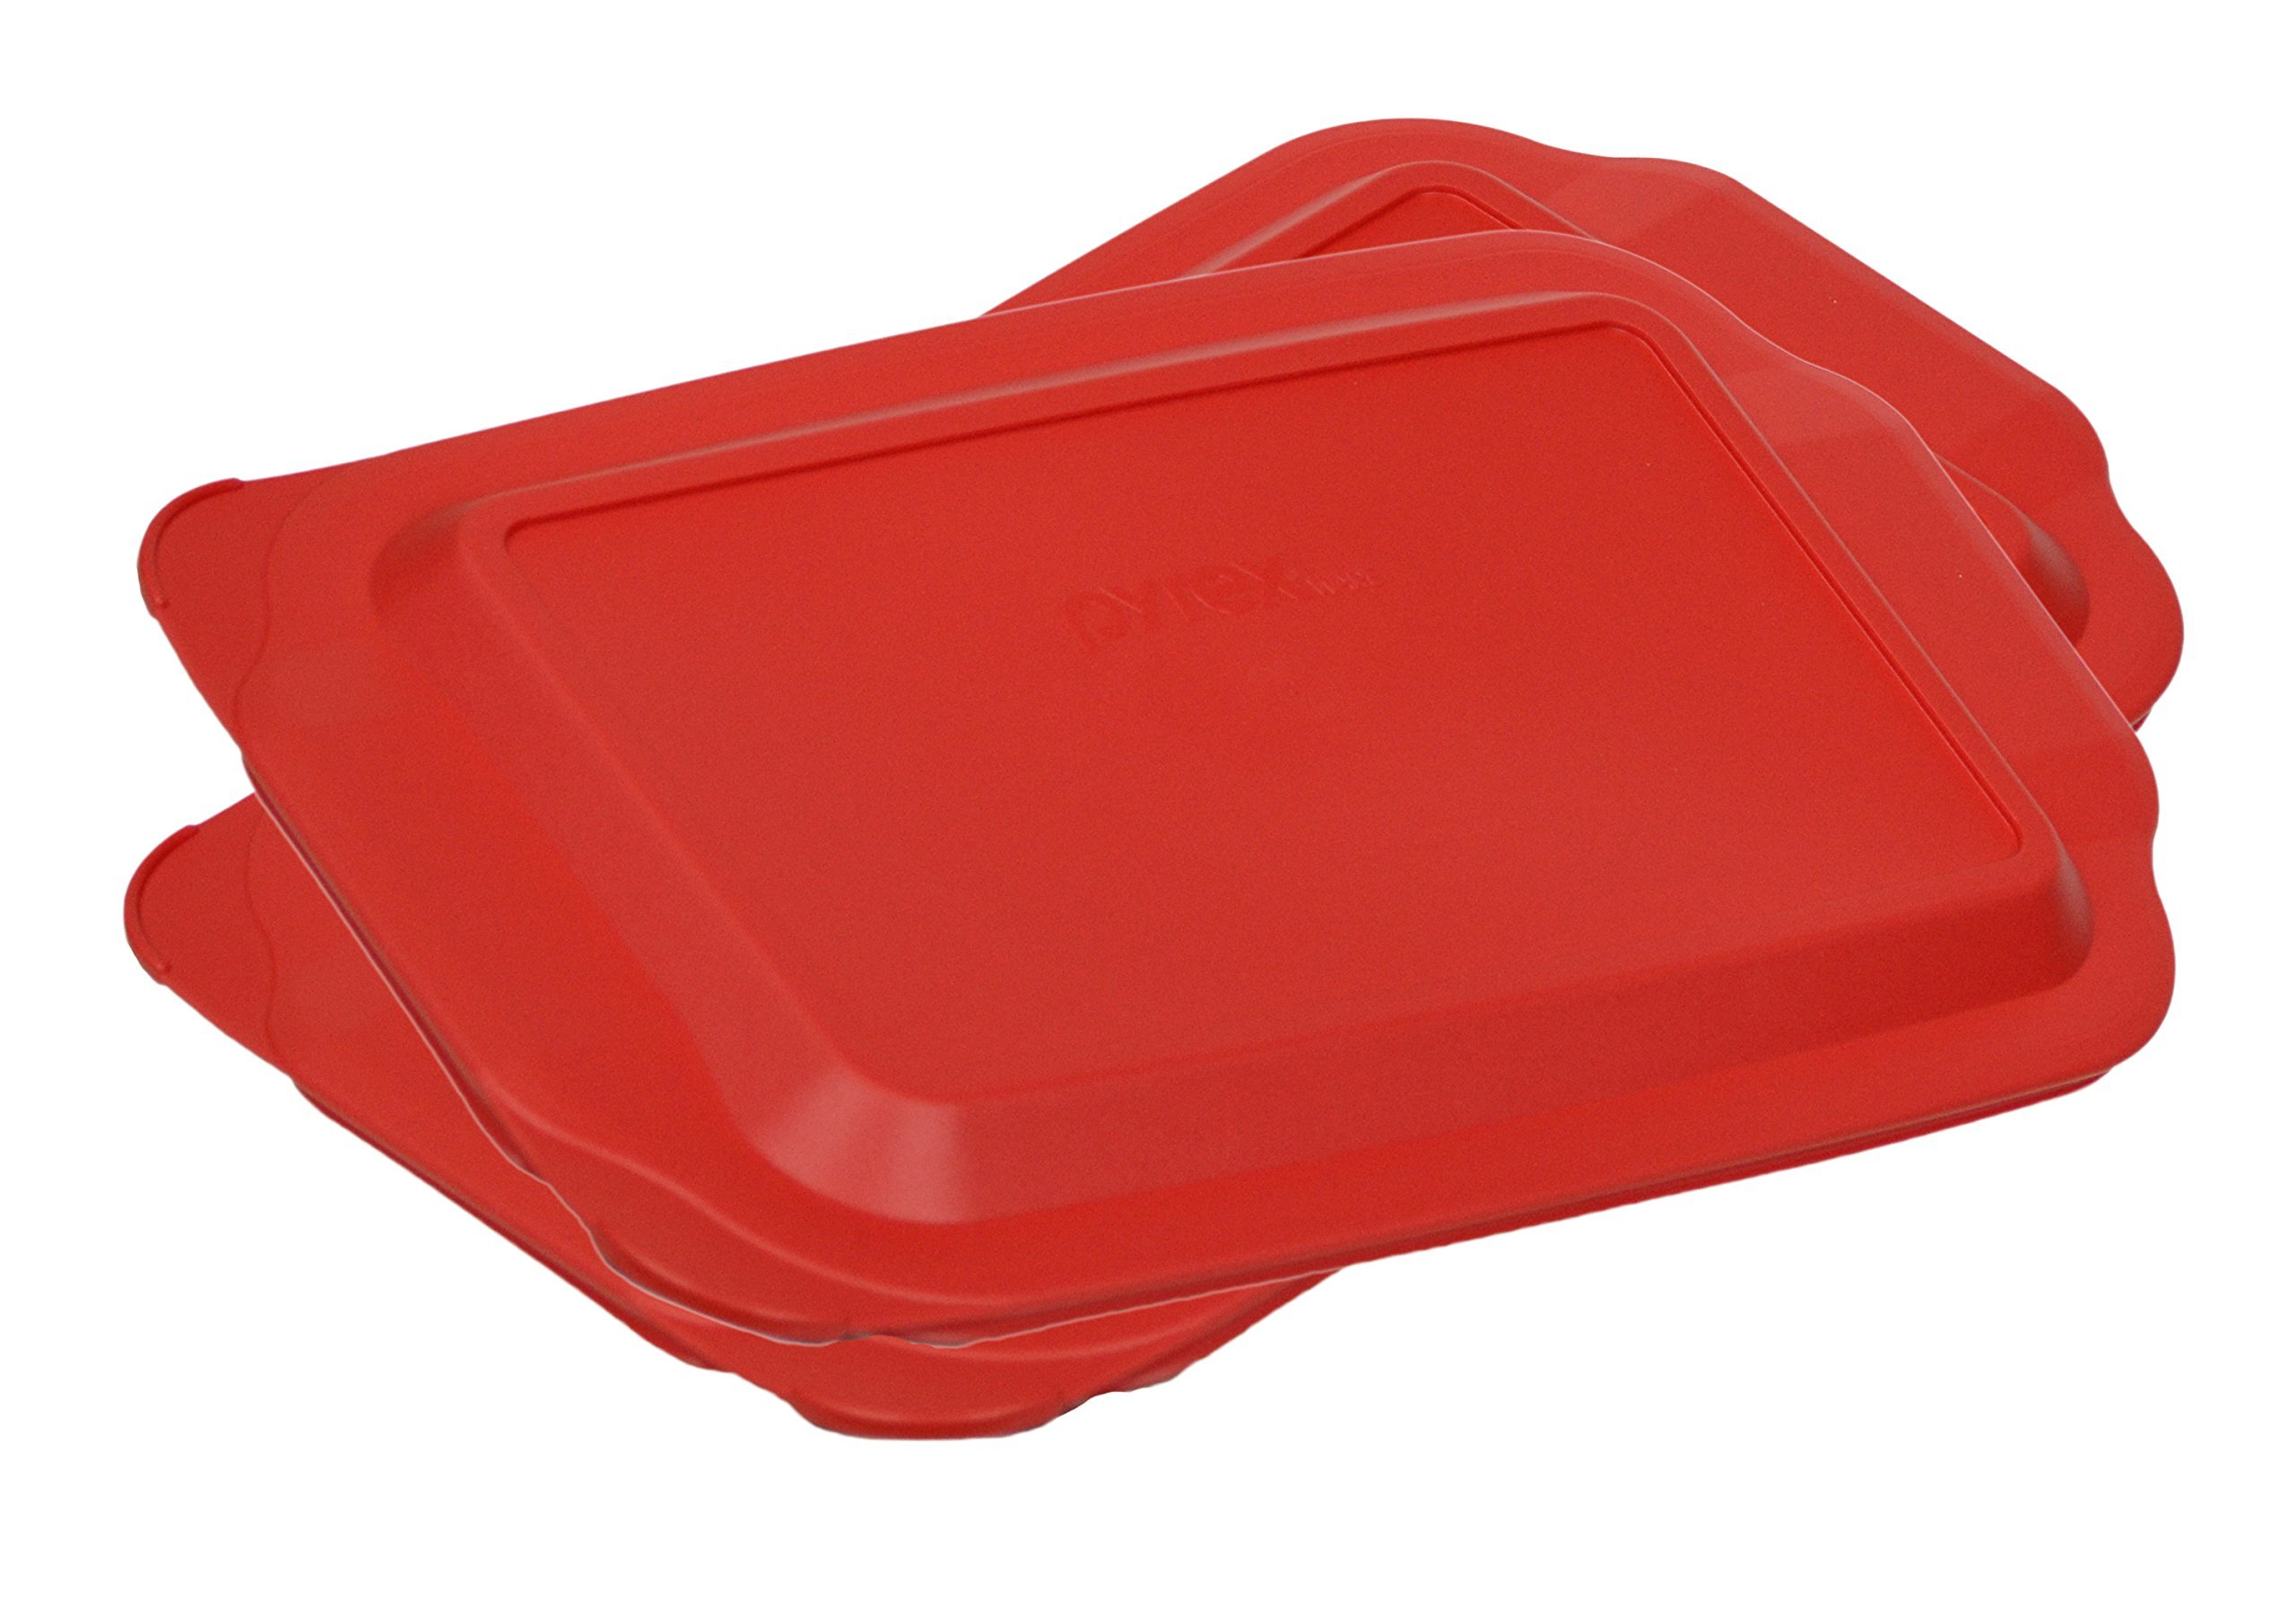 Pyrex 3 Quart 9'' x 13'' Red Rectangular Plastic Lid 233-PC for Glass Baking Dish (2 Pack)